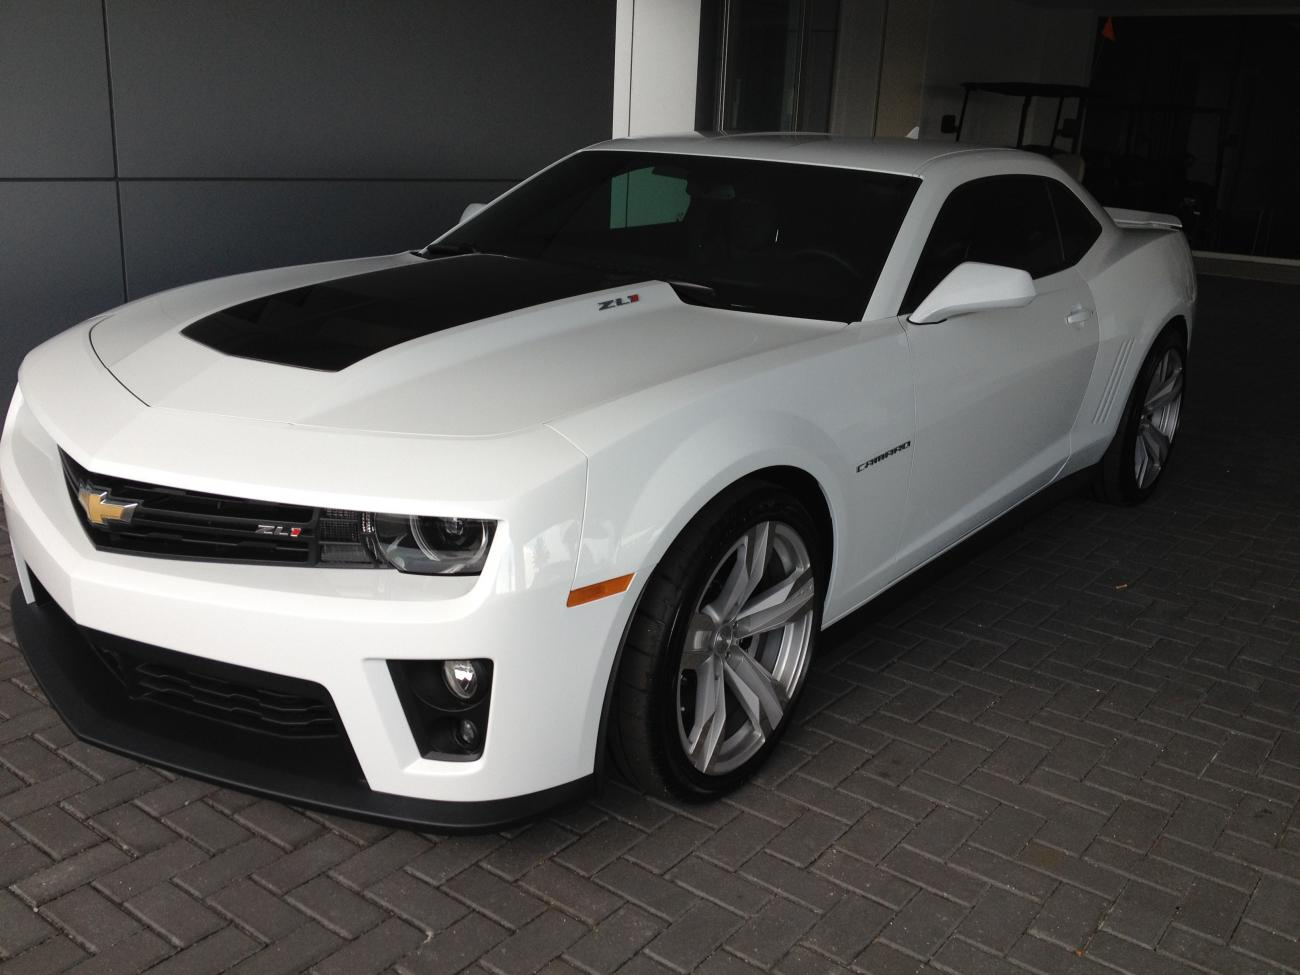 sale camaro5 chevy camaro forum camaro zl1 ss and v6 forums. Cars Review. Best American Auto & Cars Review